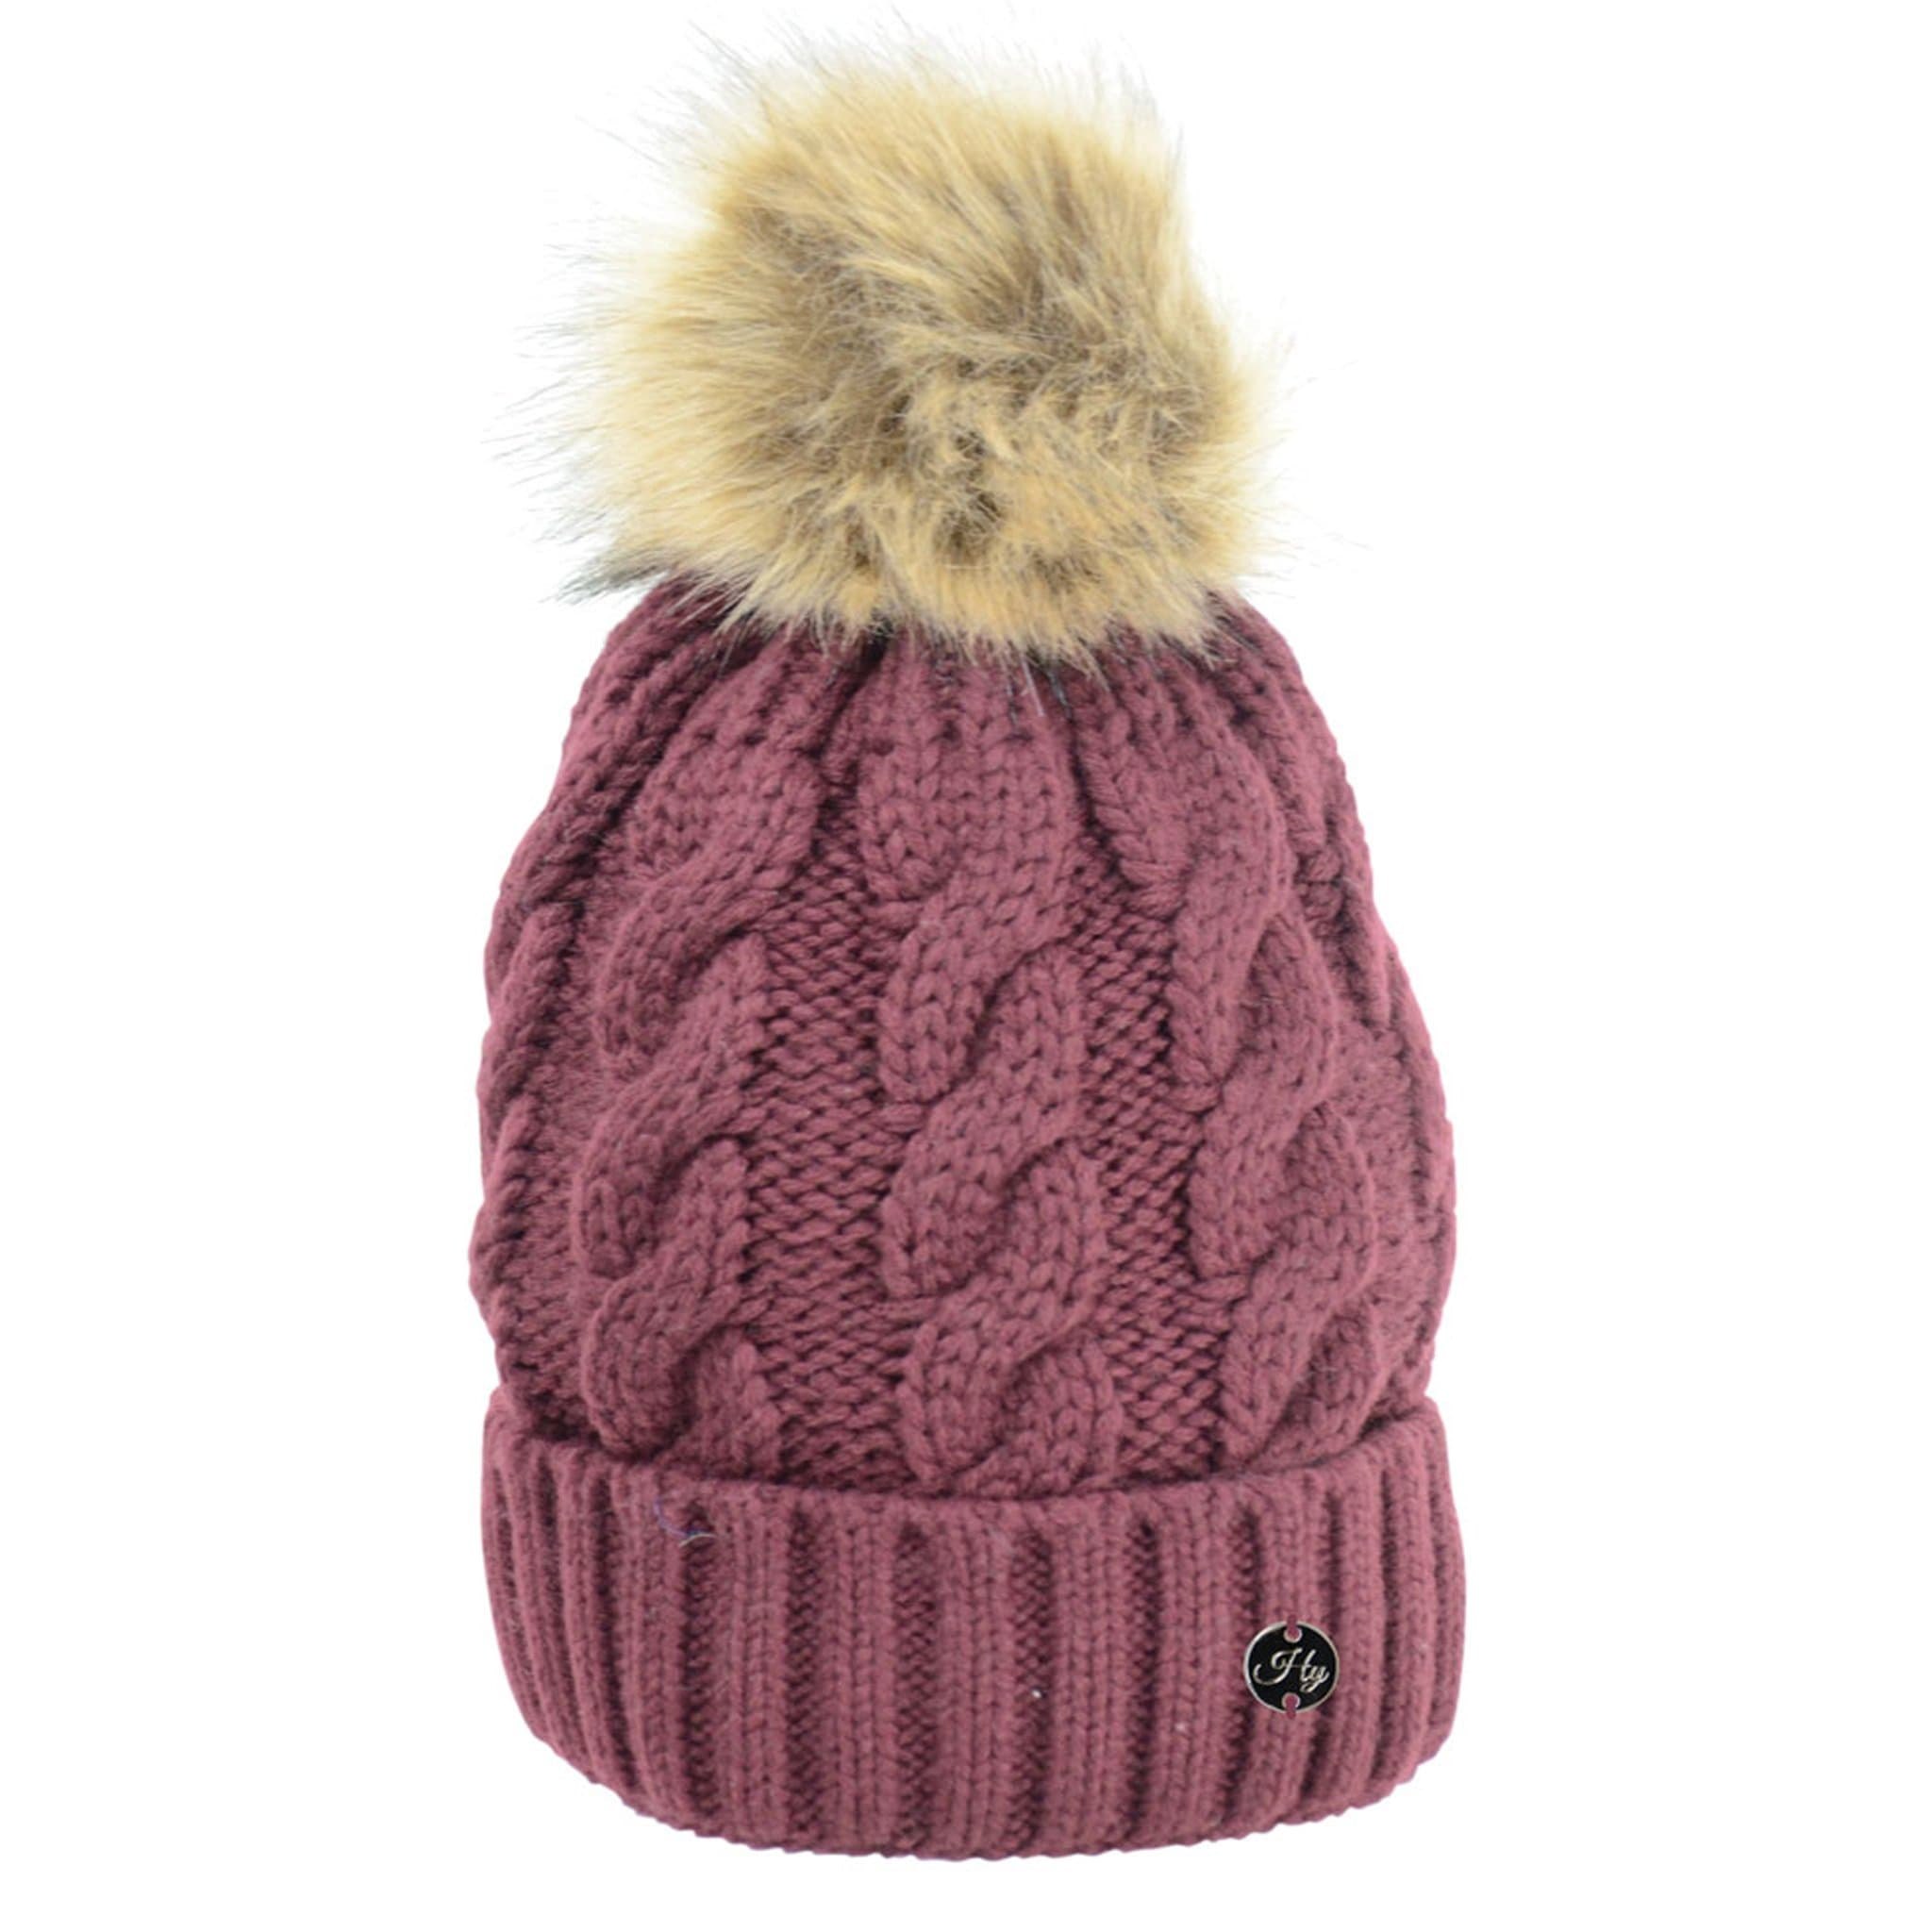 HyFASHION Melrose Cable Knit Bobble Hat in Burgundy 20564